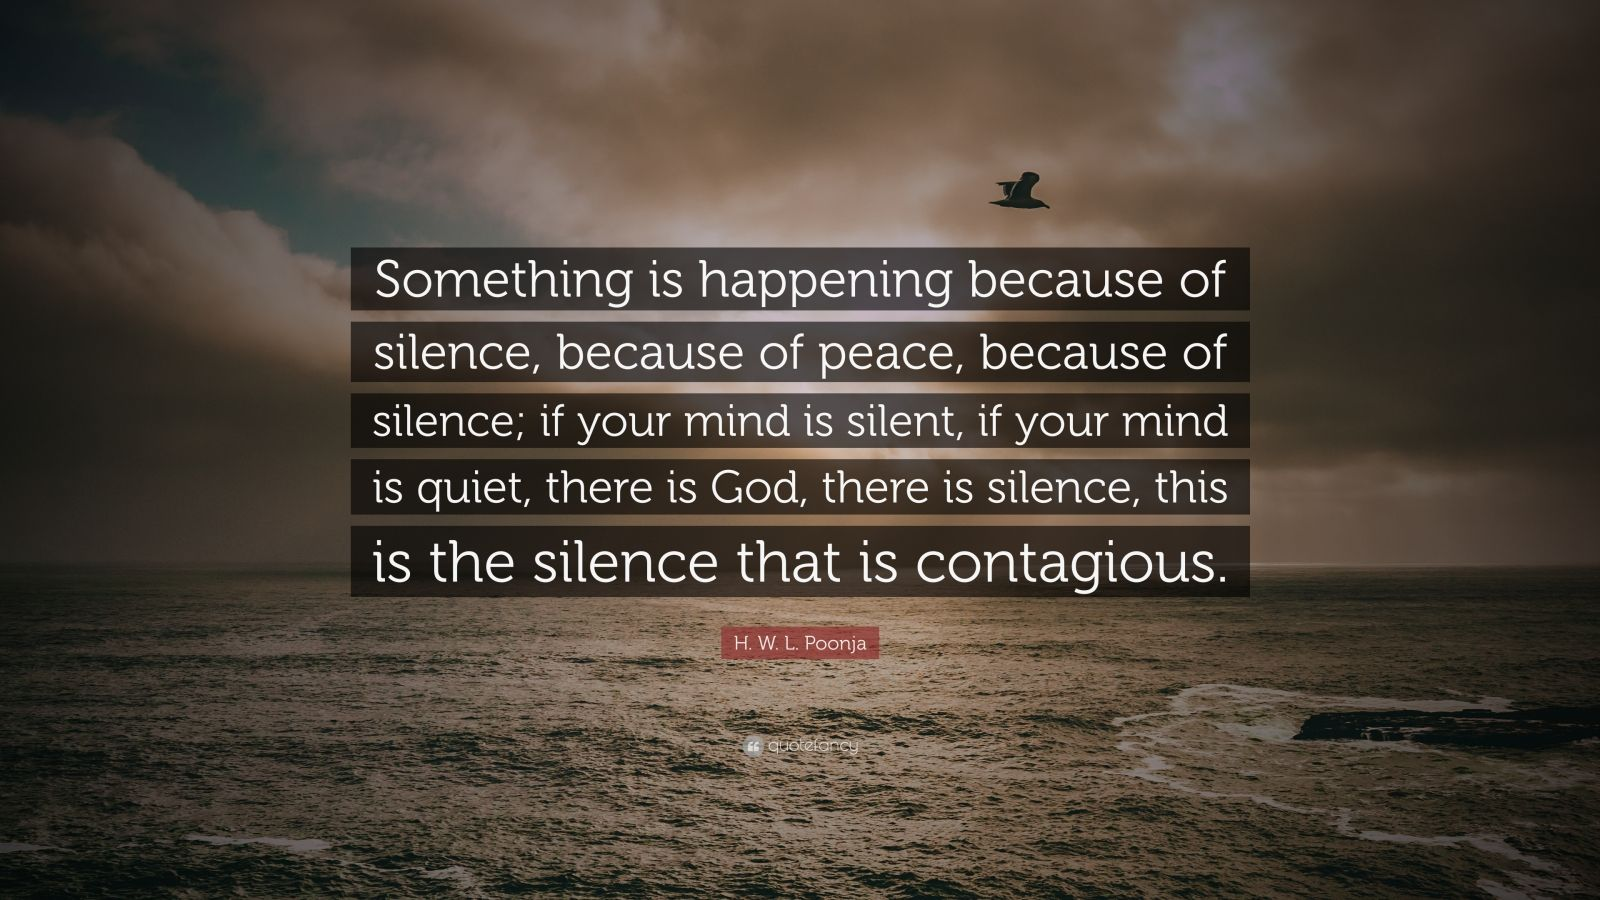 "H. W. L. Poonja Quote: ""Something is happening because of silence, because of peace, because of silence; if your mind is silent, if your mind is quiet, there is God, there is silence, this is the silence that is contagious."""